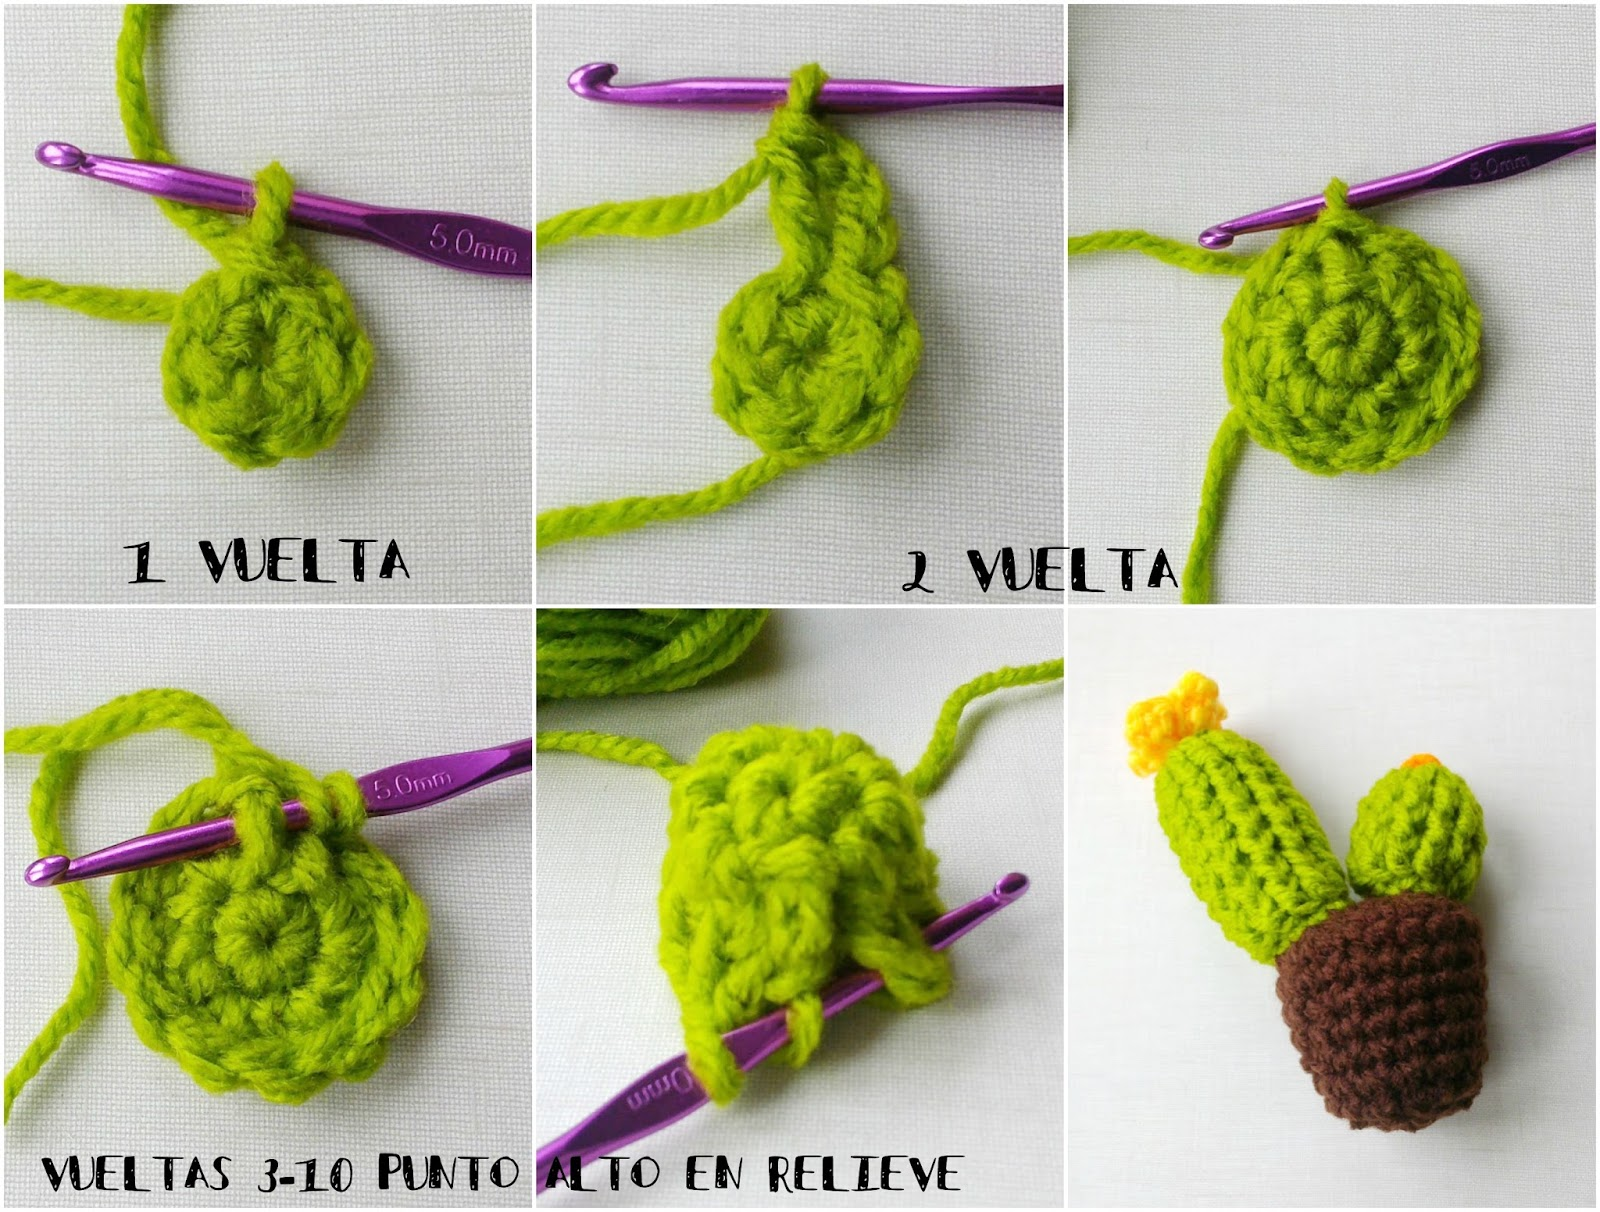 Cactus de Crochet - Tres Patrones Gratuitos !!! - Handbox Craft ...